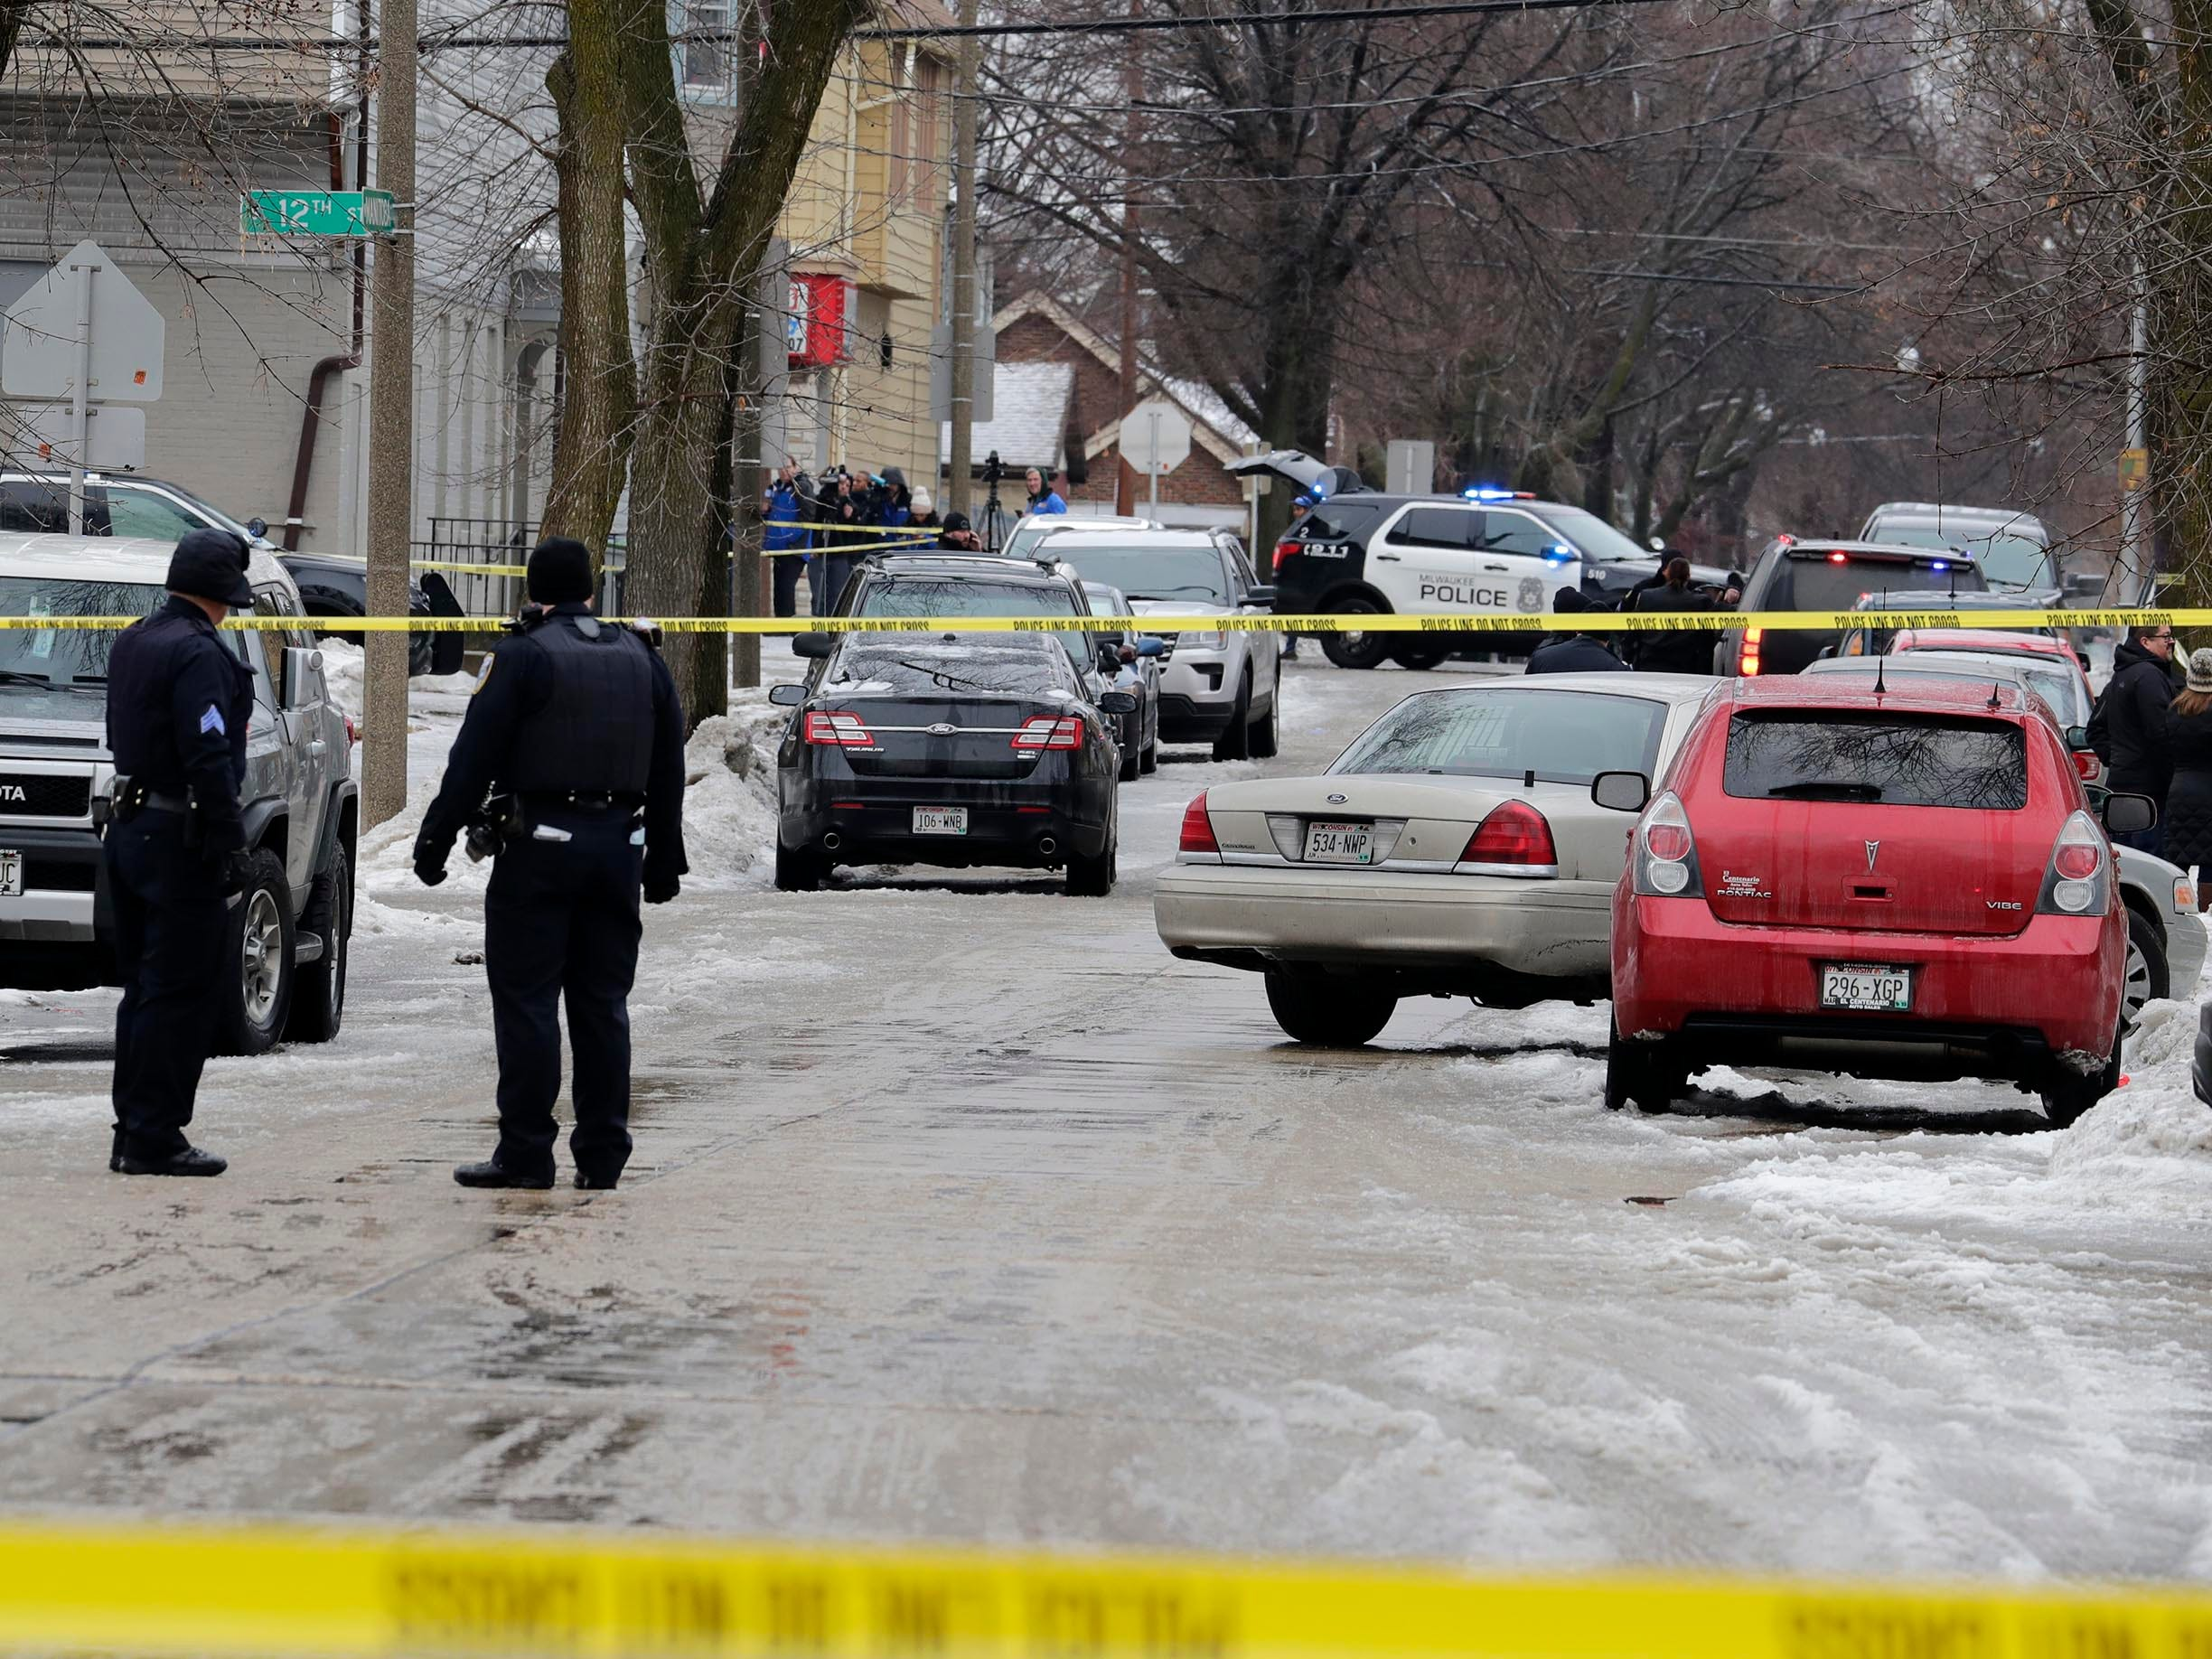 A number of streets were blocked off Wednesday morning as police responded to the shooting of an officer.